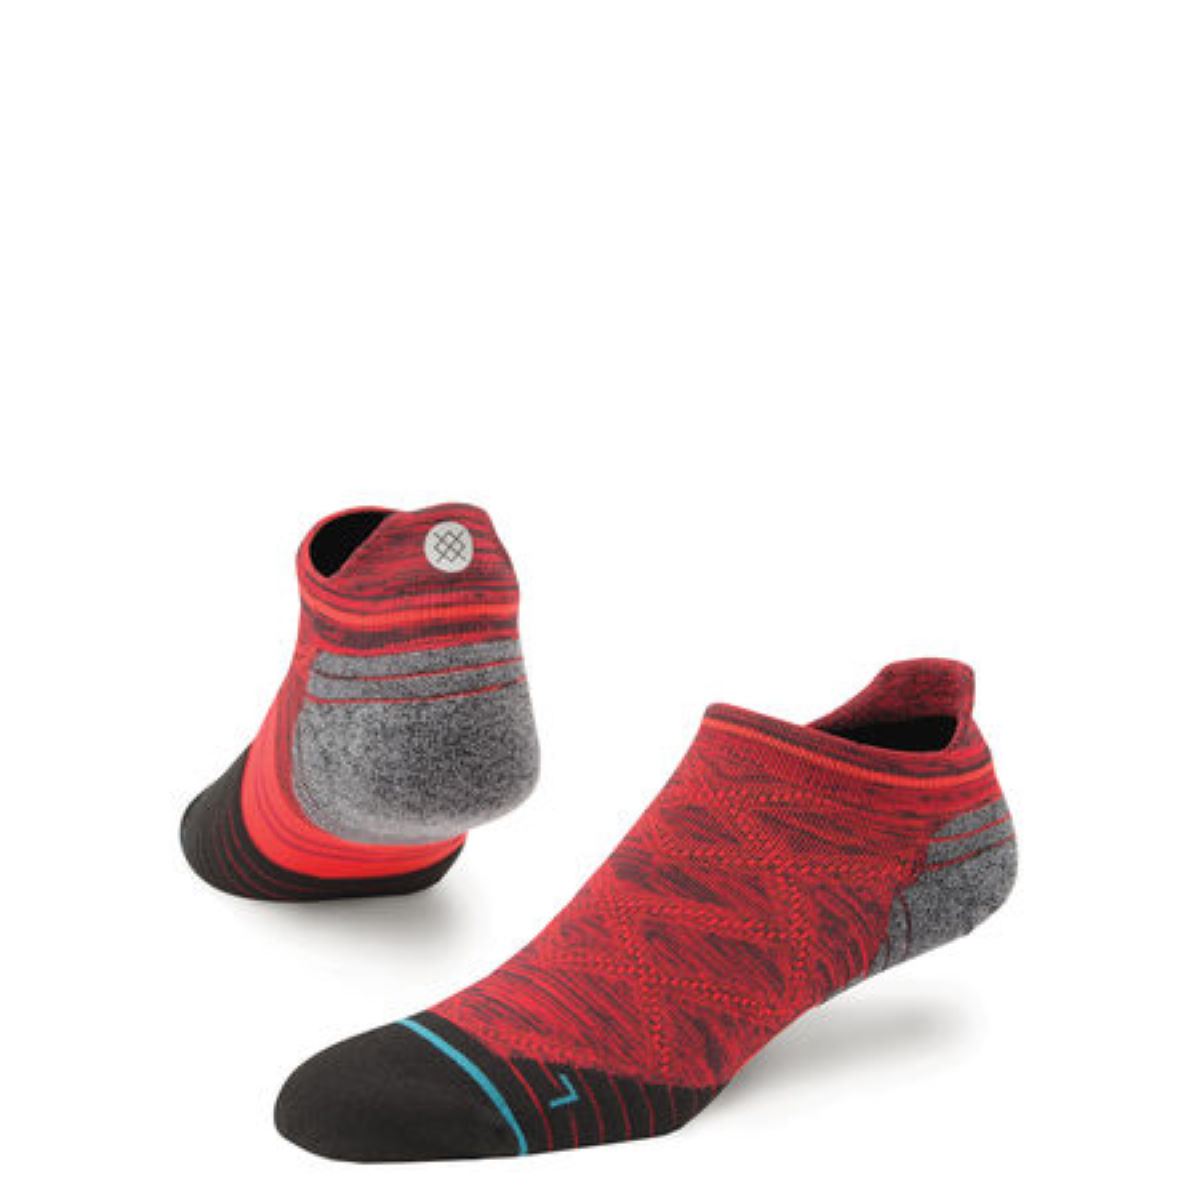 Chaussettes basses Stance Endeavor Tab Run - M Rouge